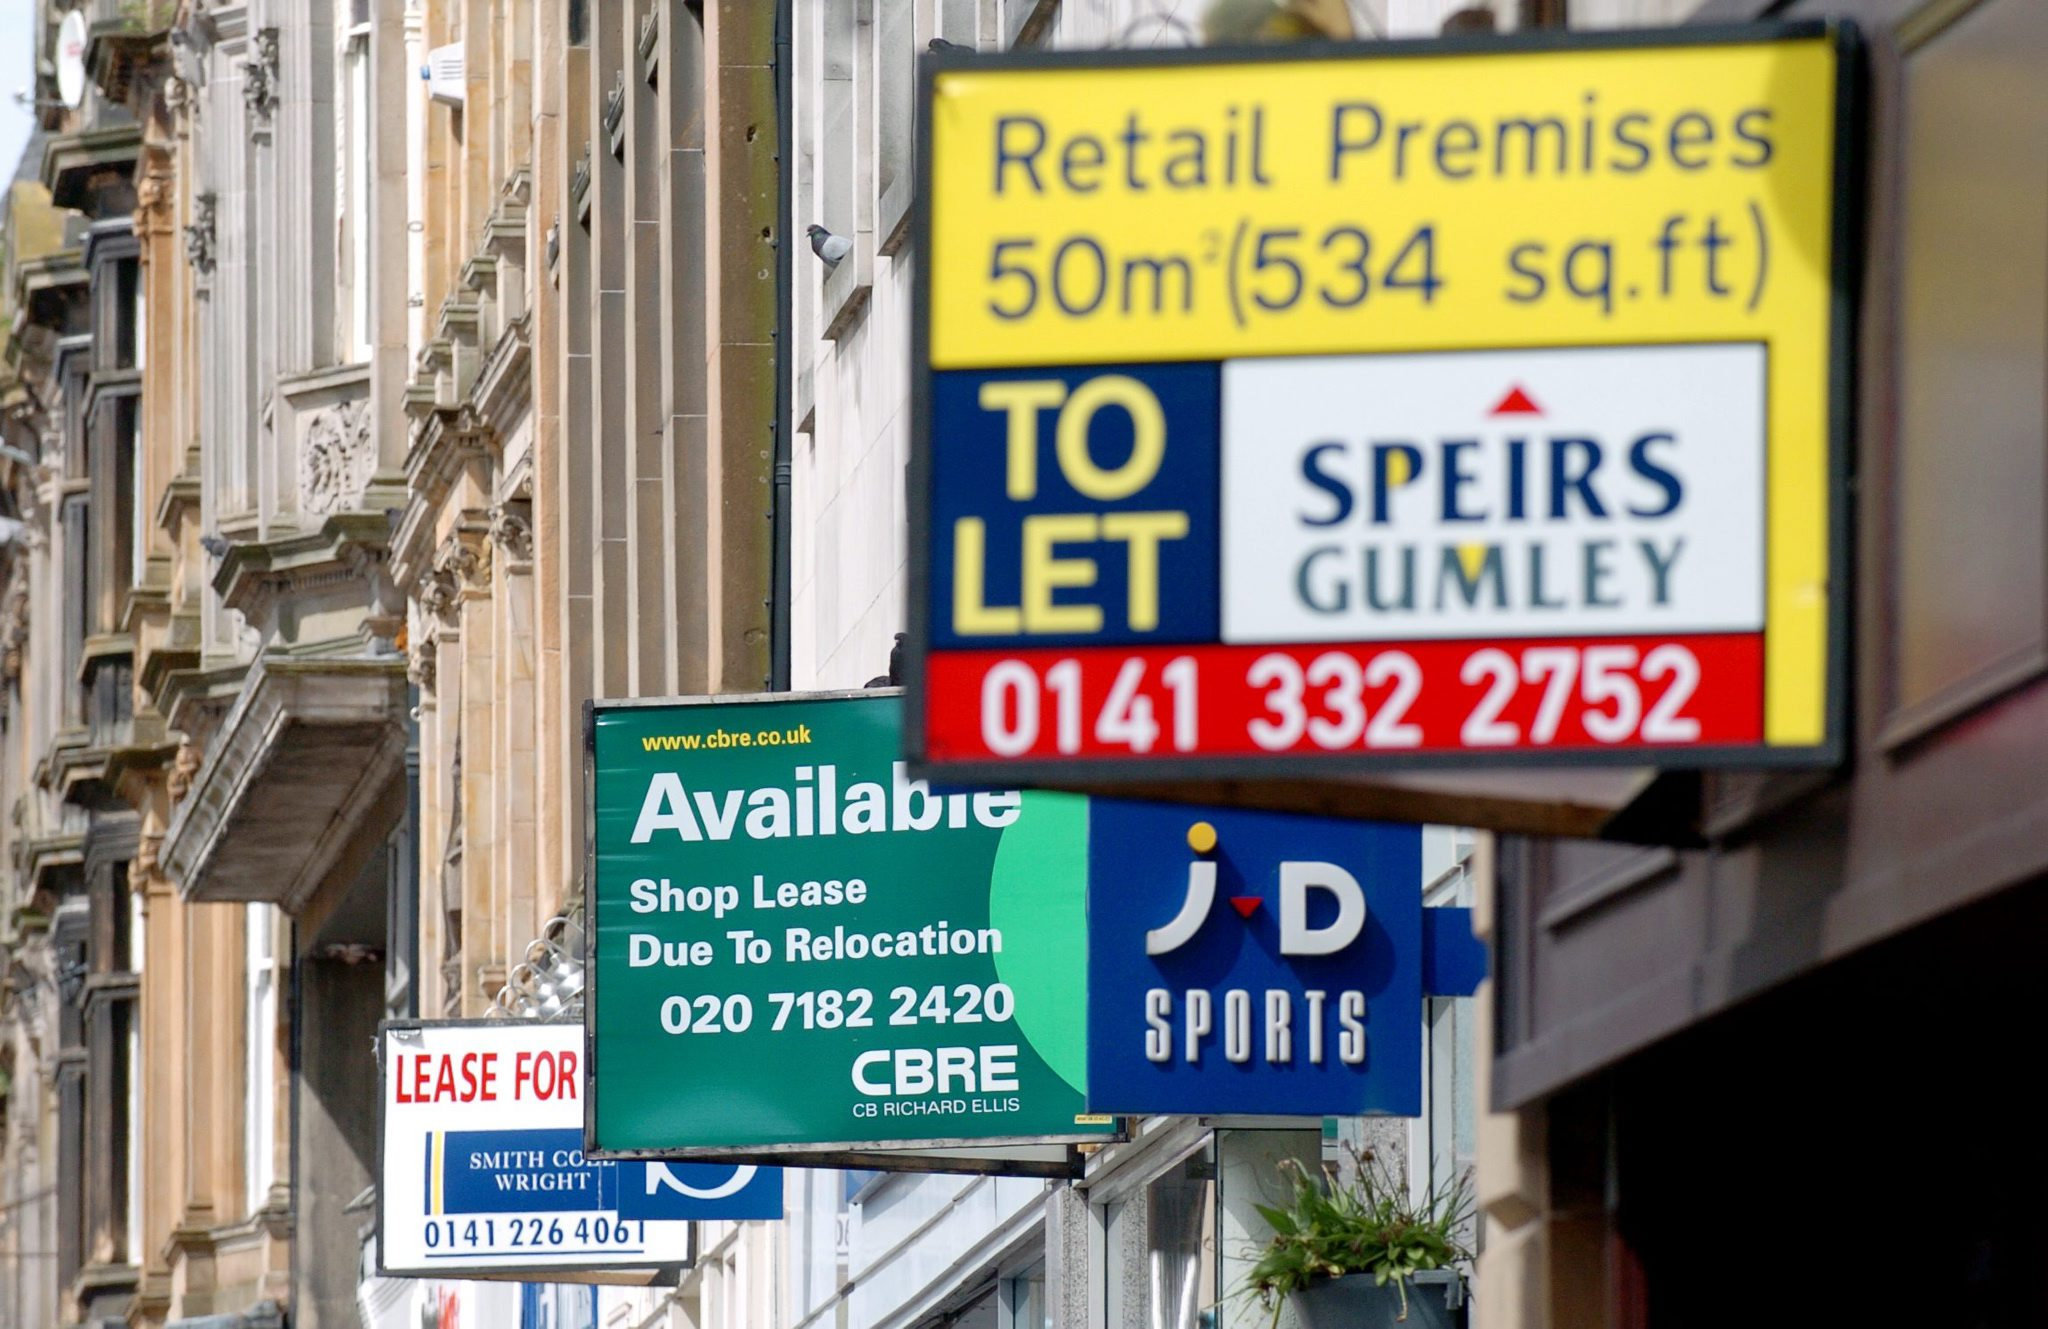 Scotland's highest-ever level of high street insolvencies were recorded in the first quarterof 2019 as 28 stores failed